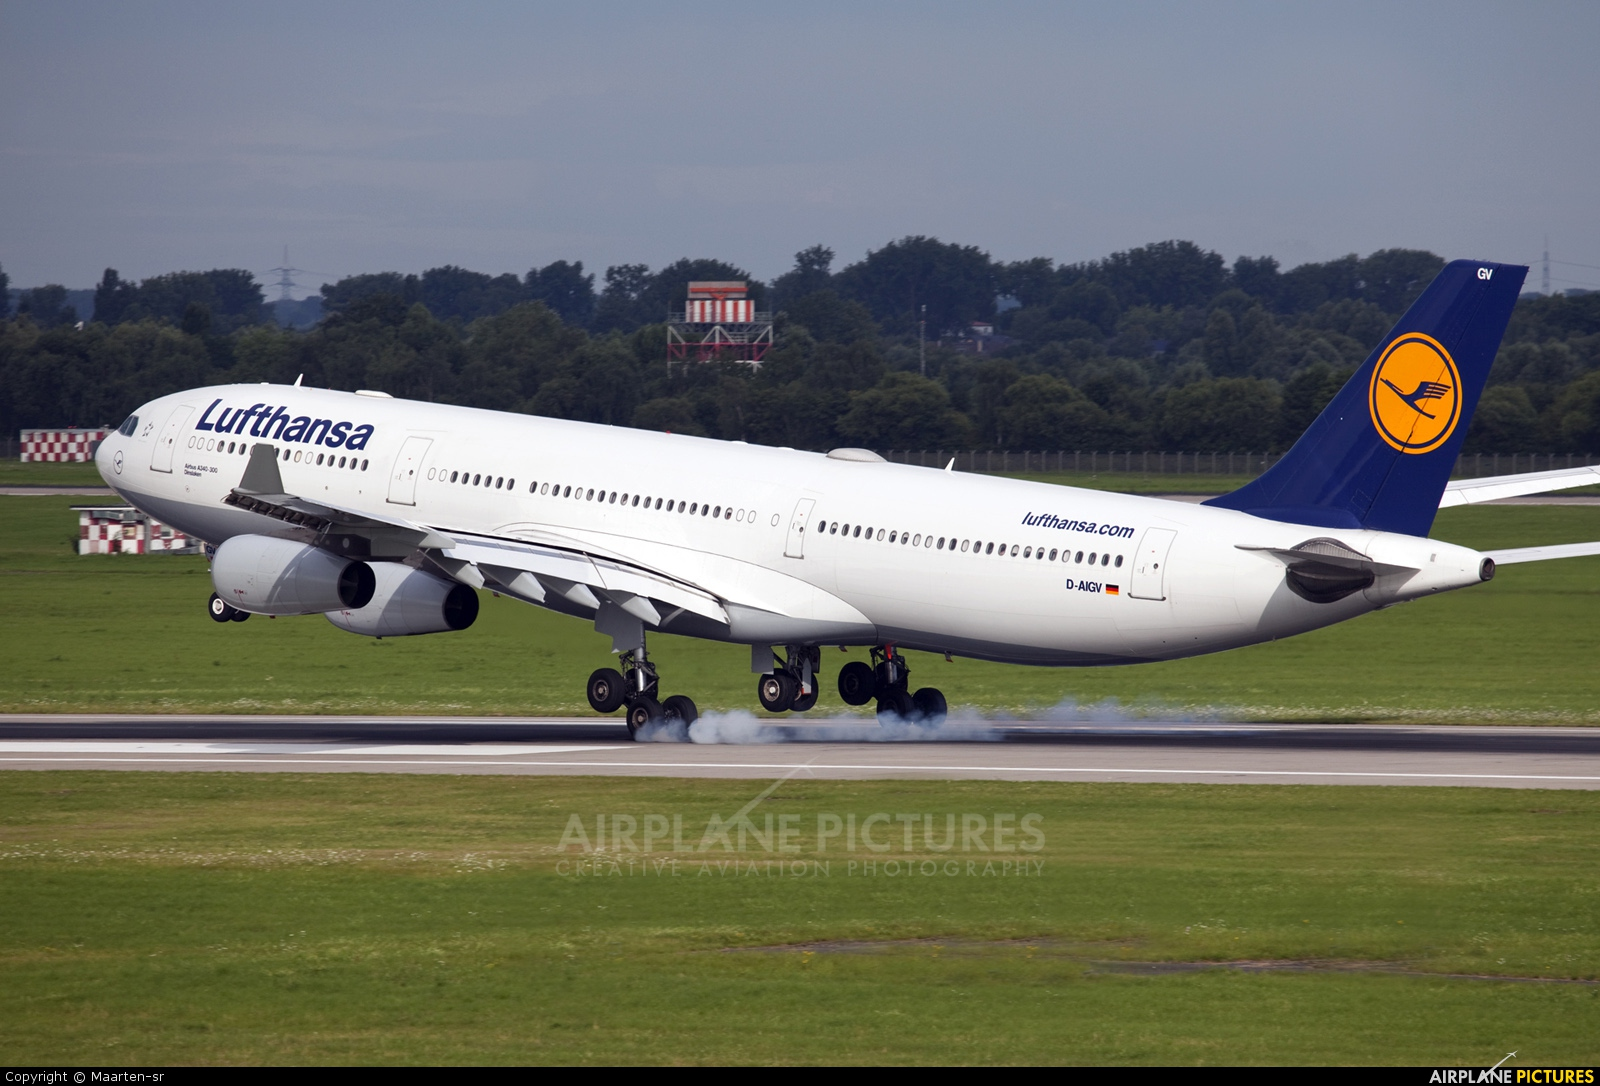 d aigv lufthansa airbus a340 300 at d sseldorf photo id 229379 airplane. Black Bedroom Furniture Sets. Home Design Ideas